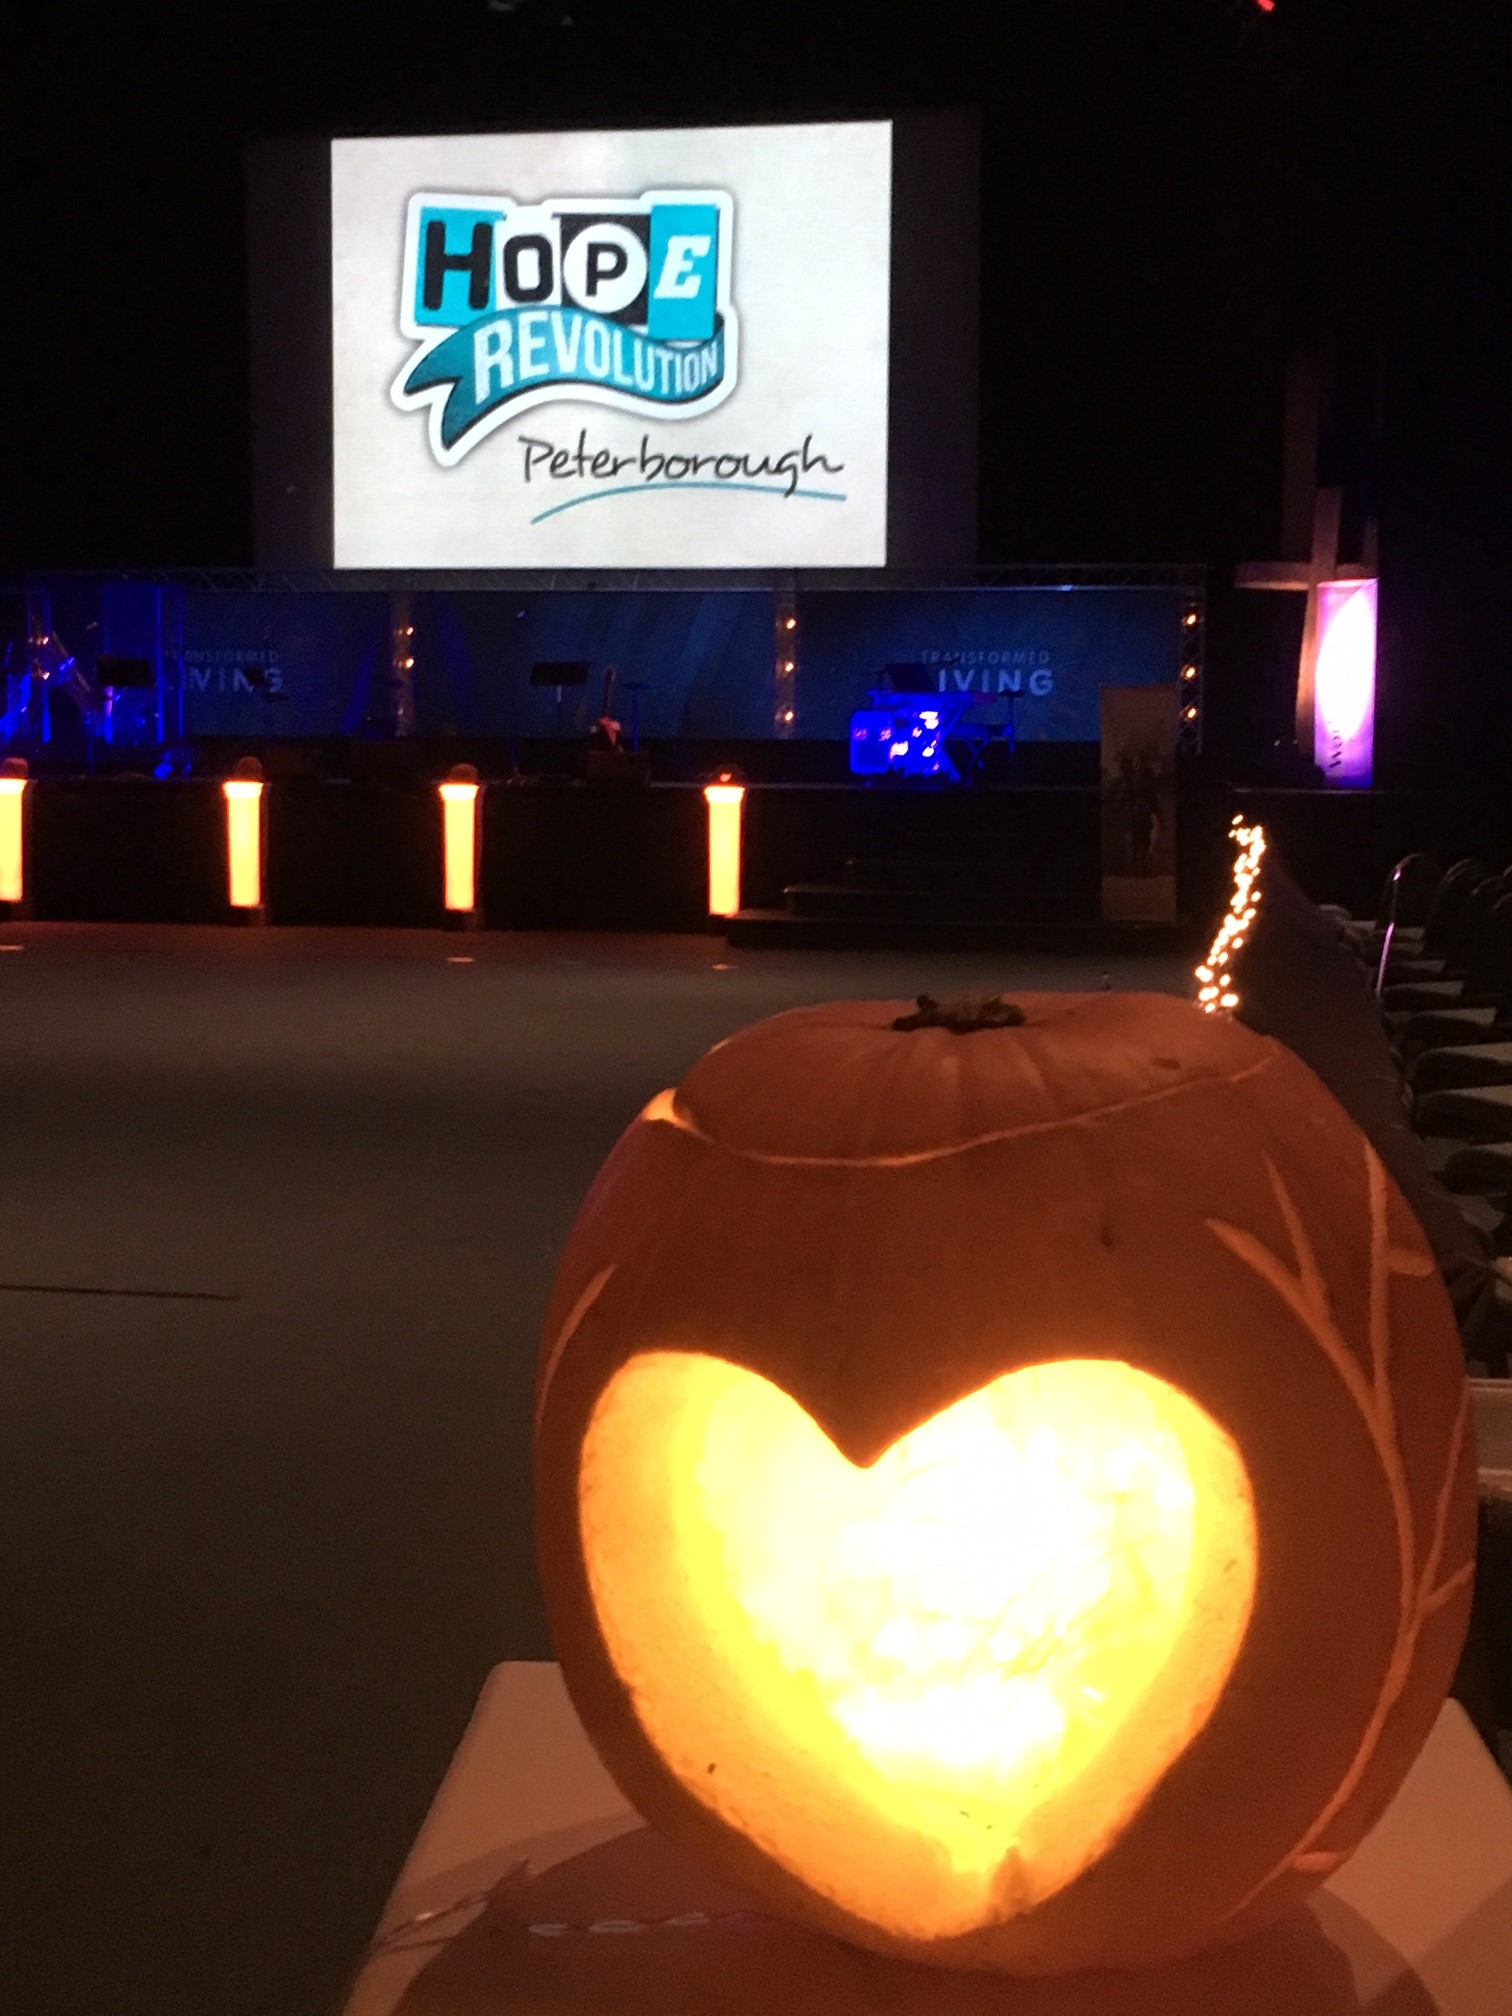 Carve a Heart proves huge success